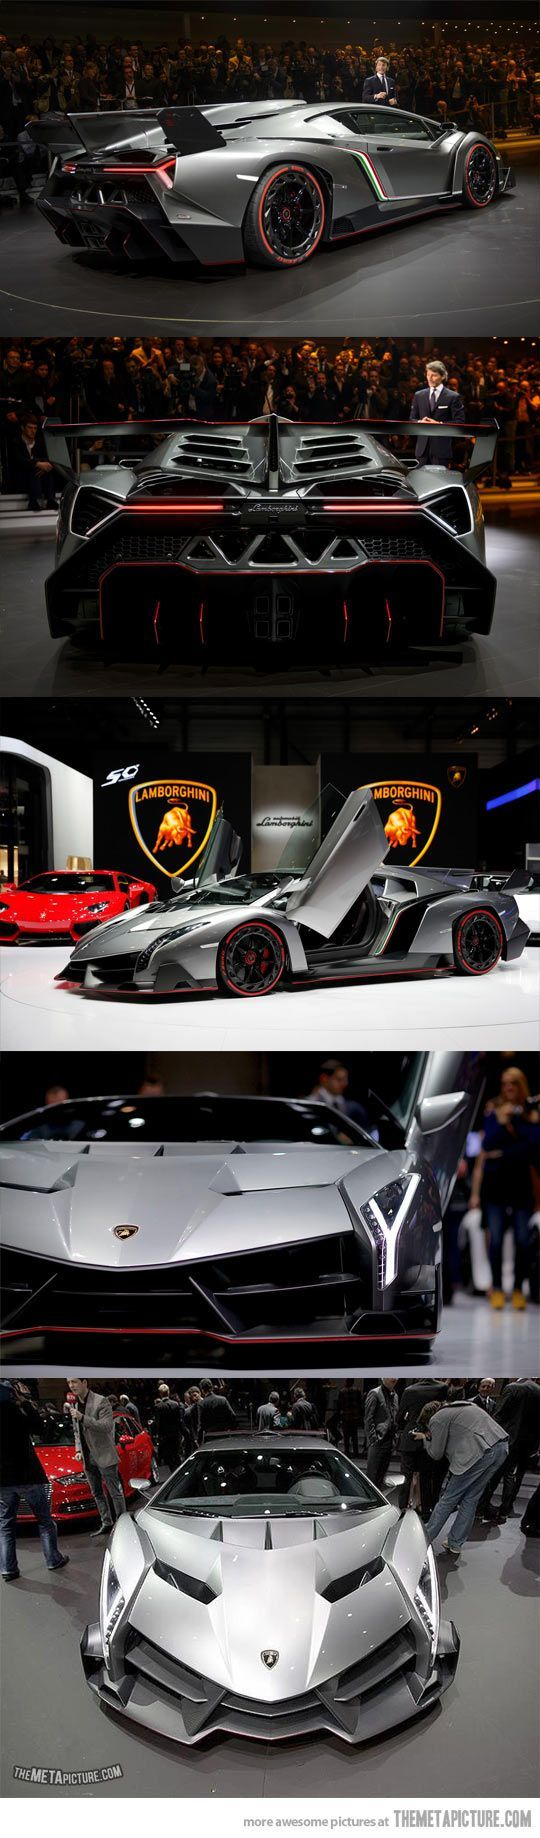 Lamborghini Veneno Only 3 Were Made In The World